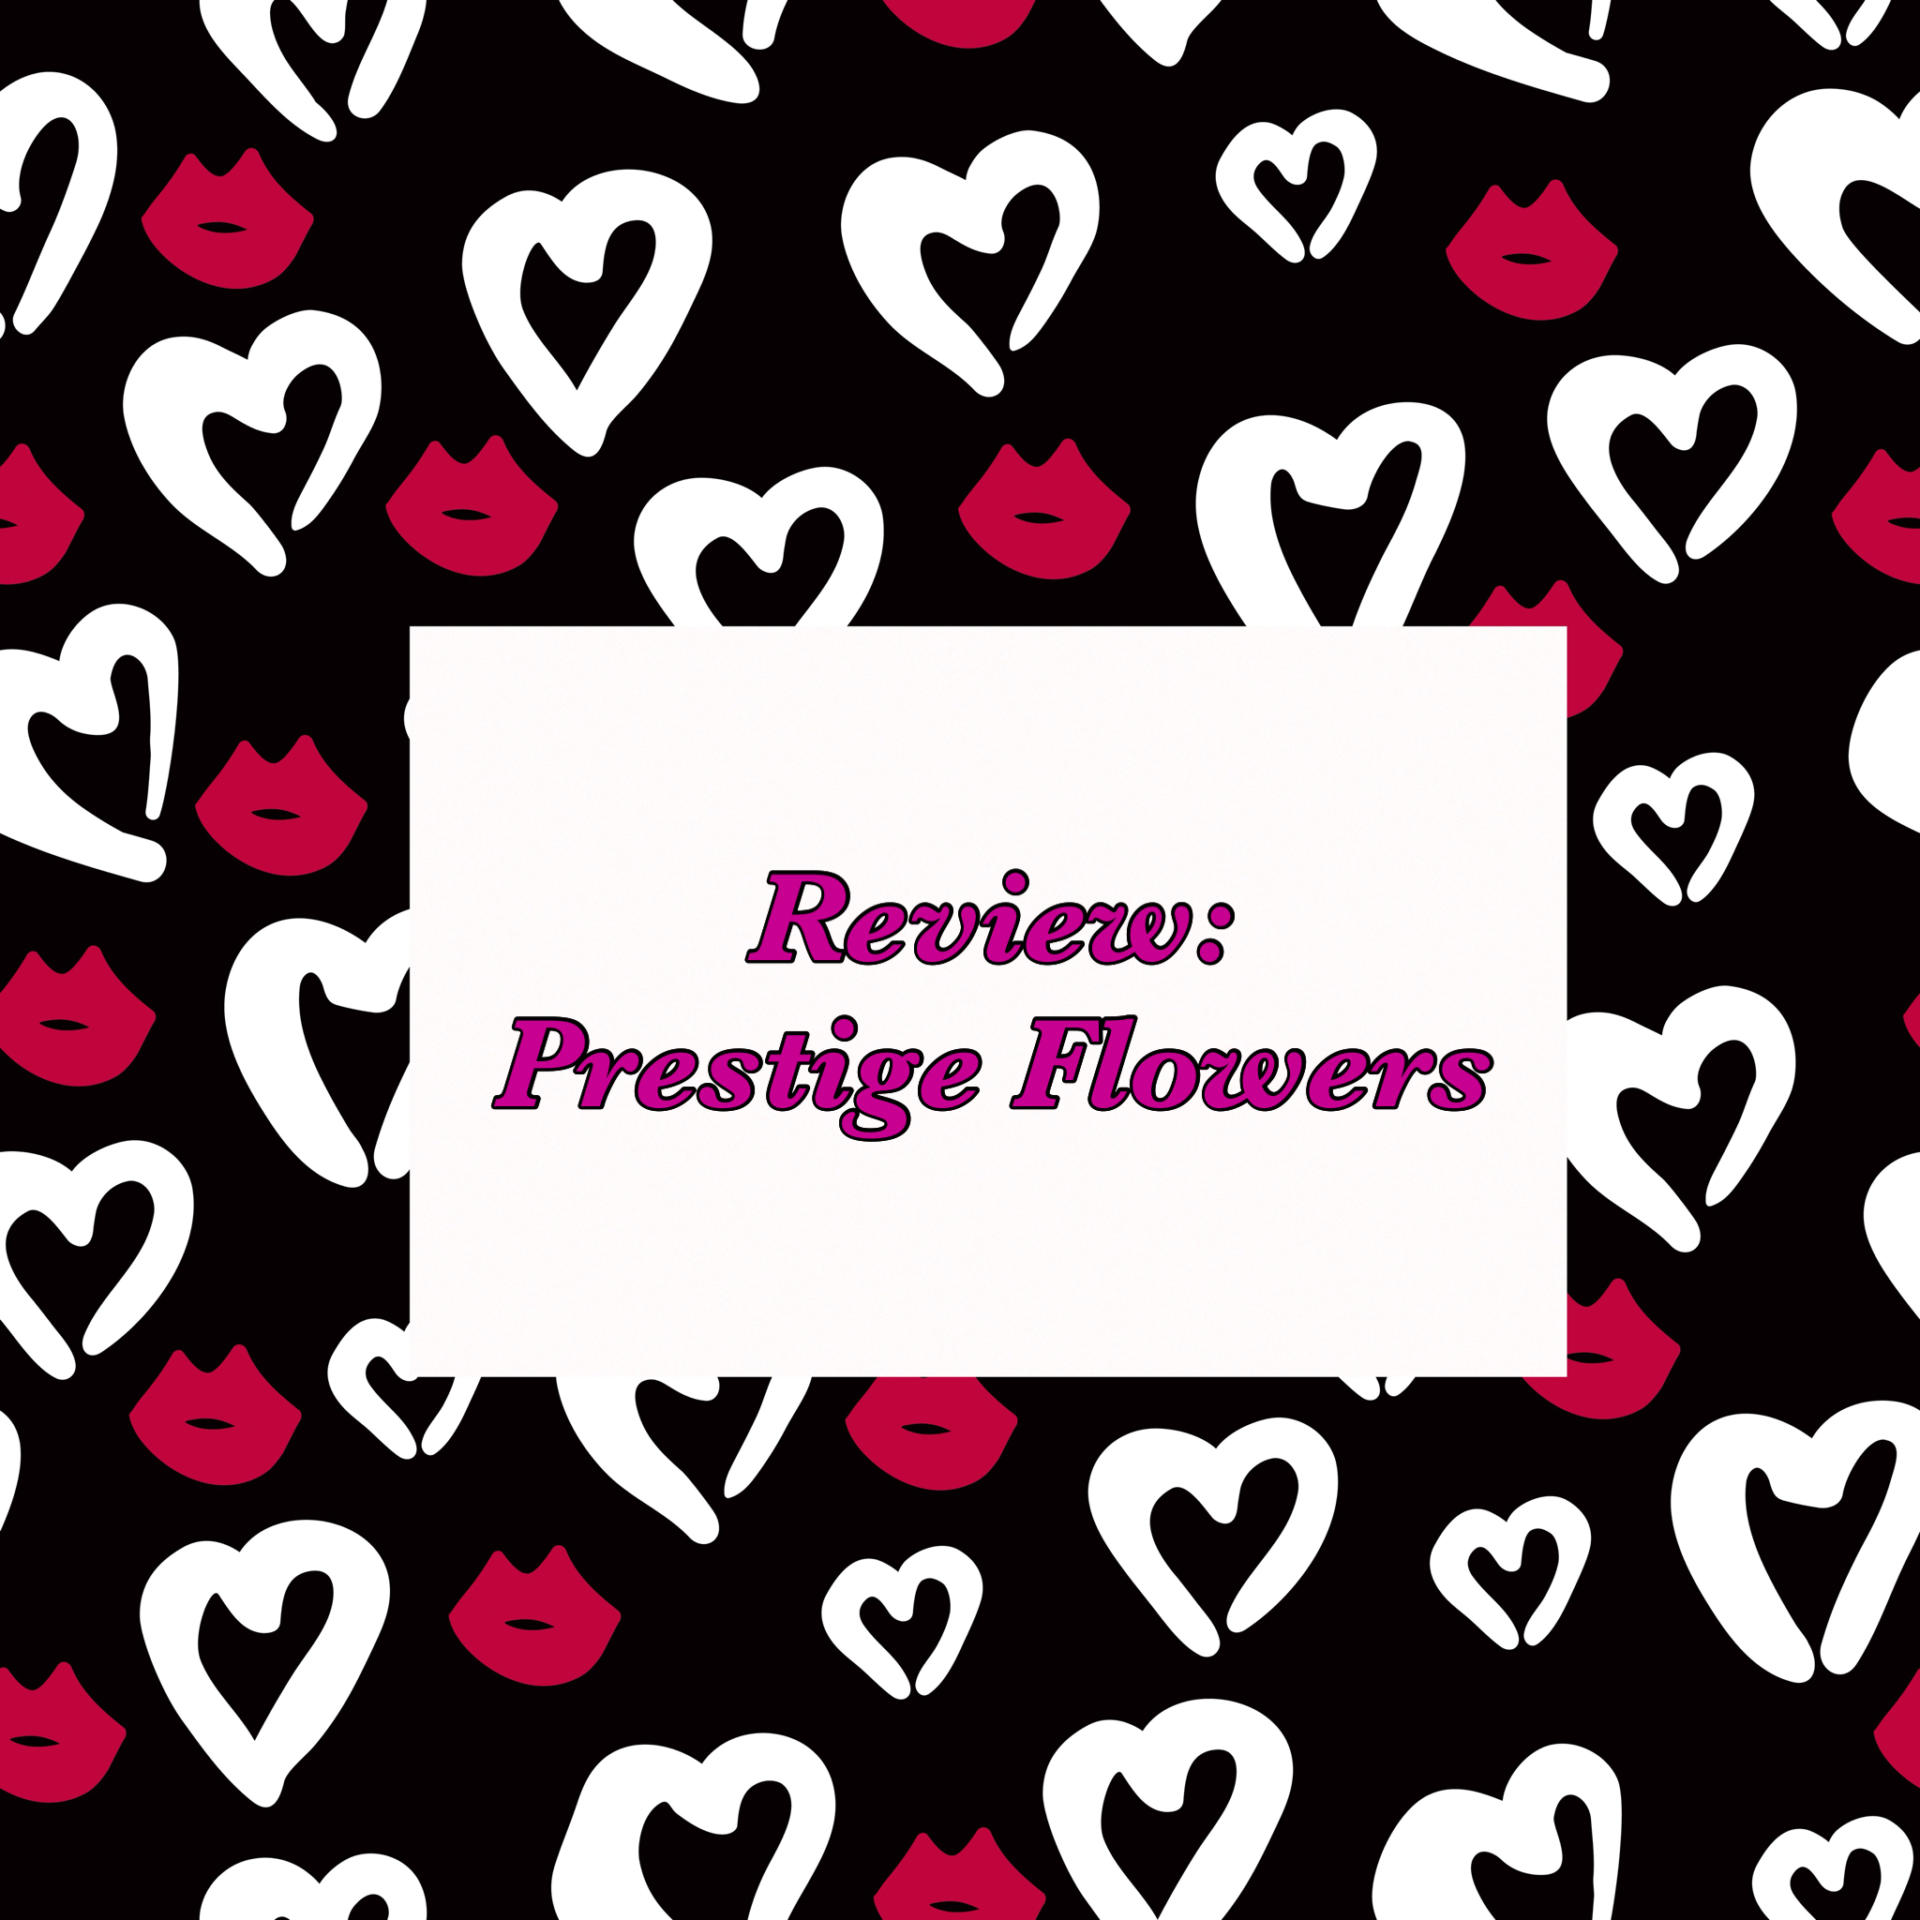 Review: Prestige Flowers